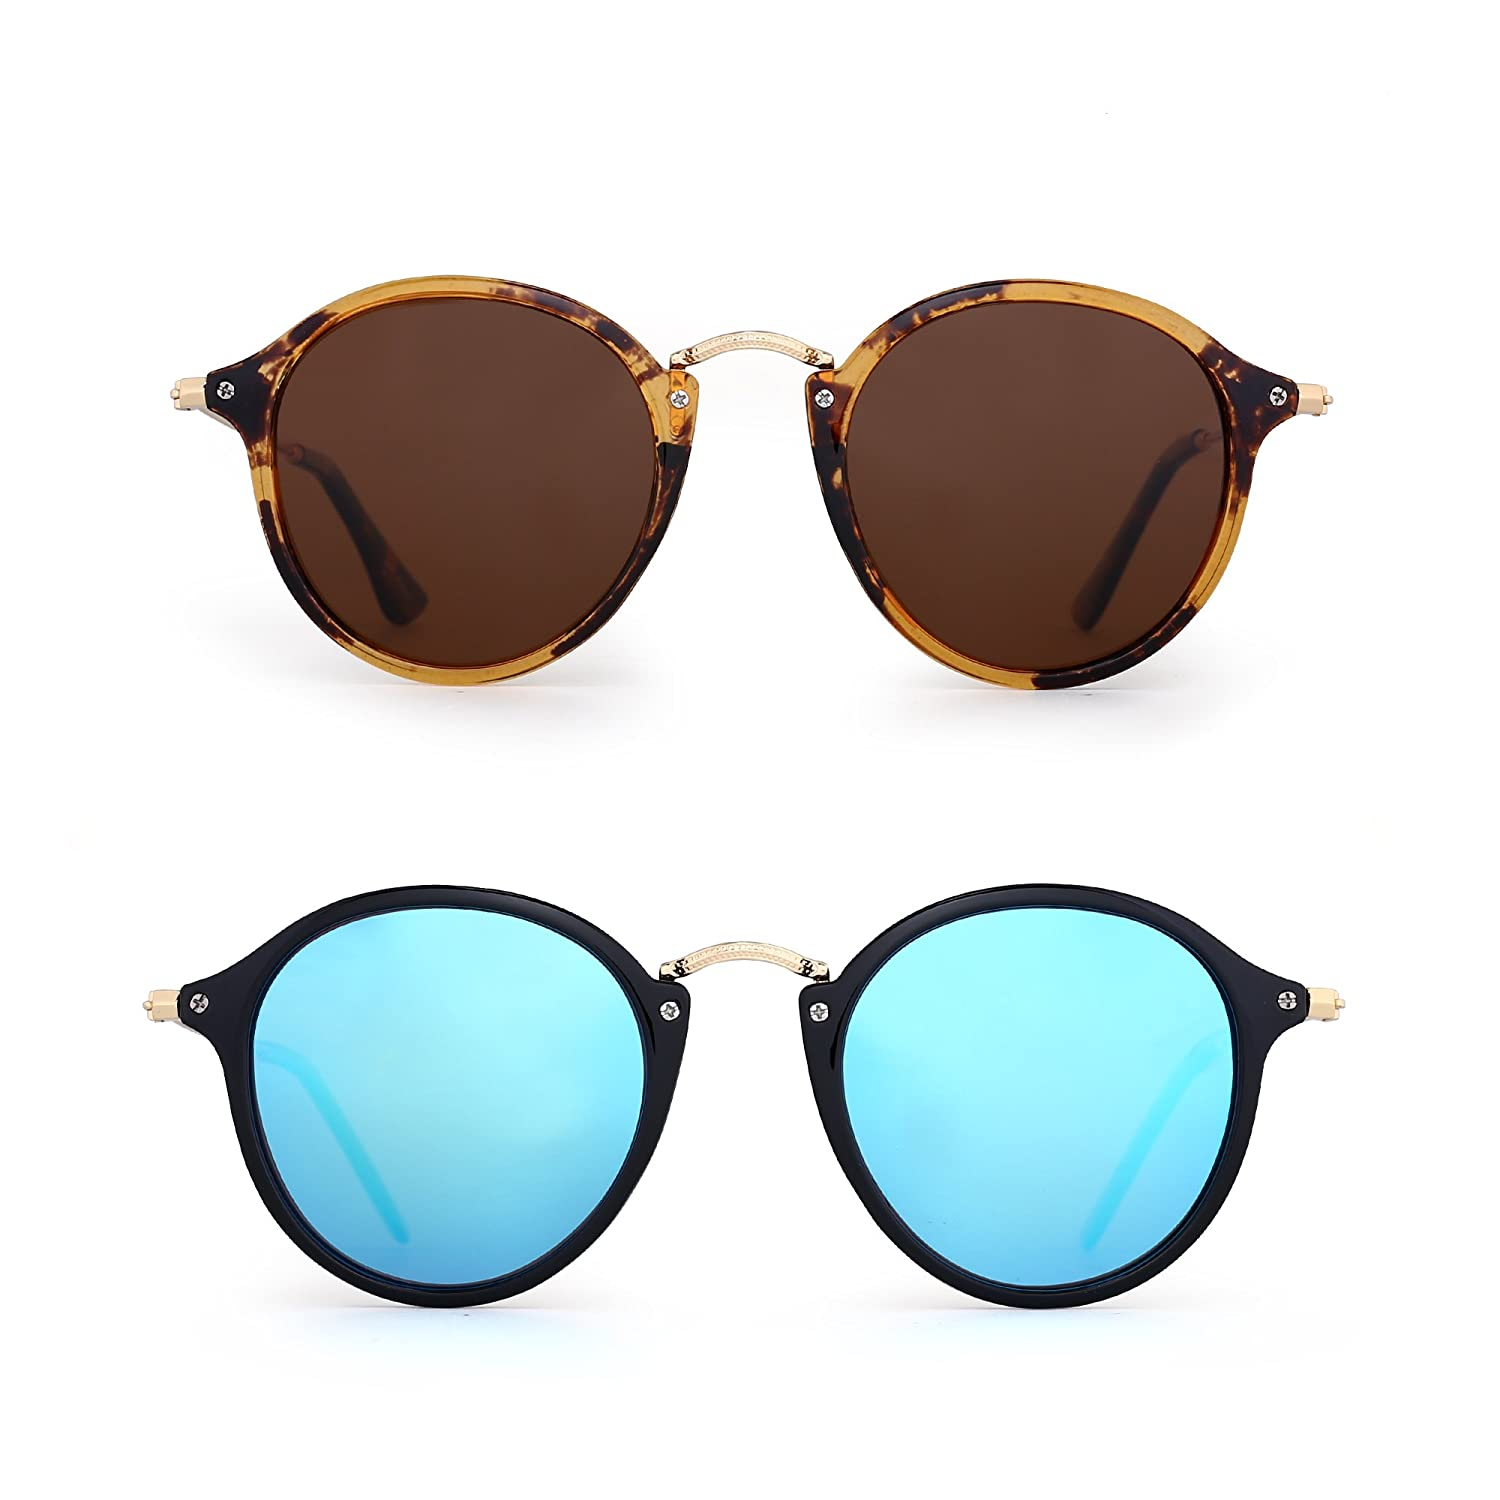 9c20a254ee0 Amazon.com  JIM HALO Retro Polarized Round Sunglasses for Women Vintage  Small Mirror Glasses 2 Pack (Brown   Blue)  Clothing